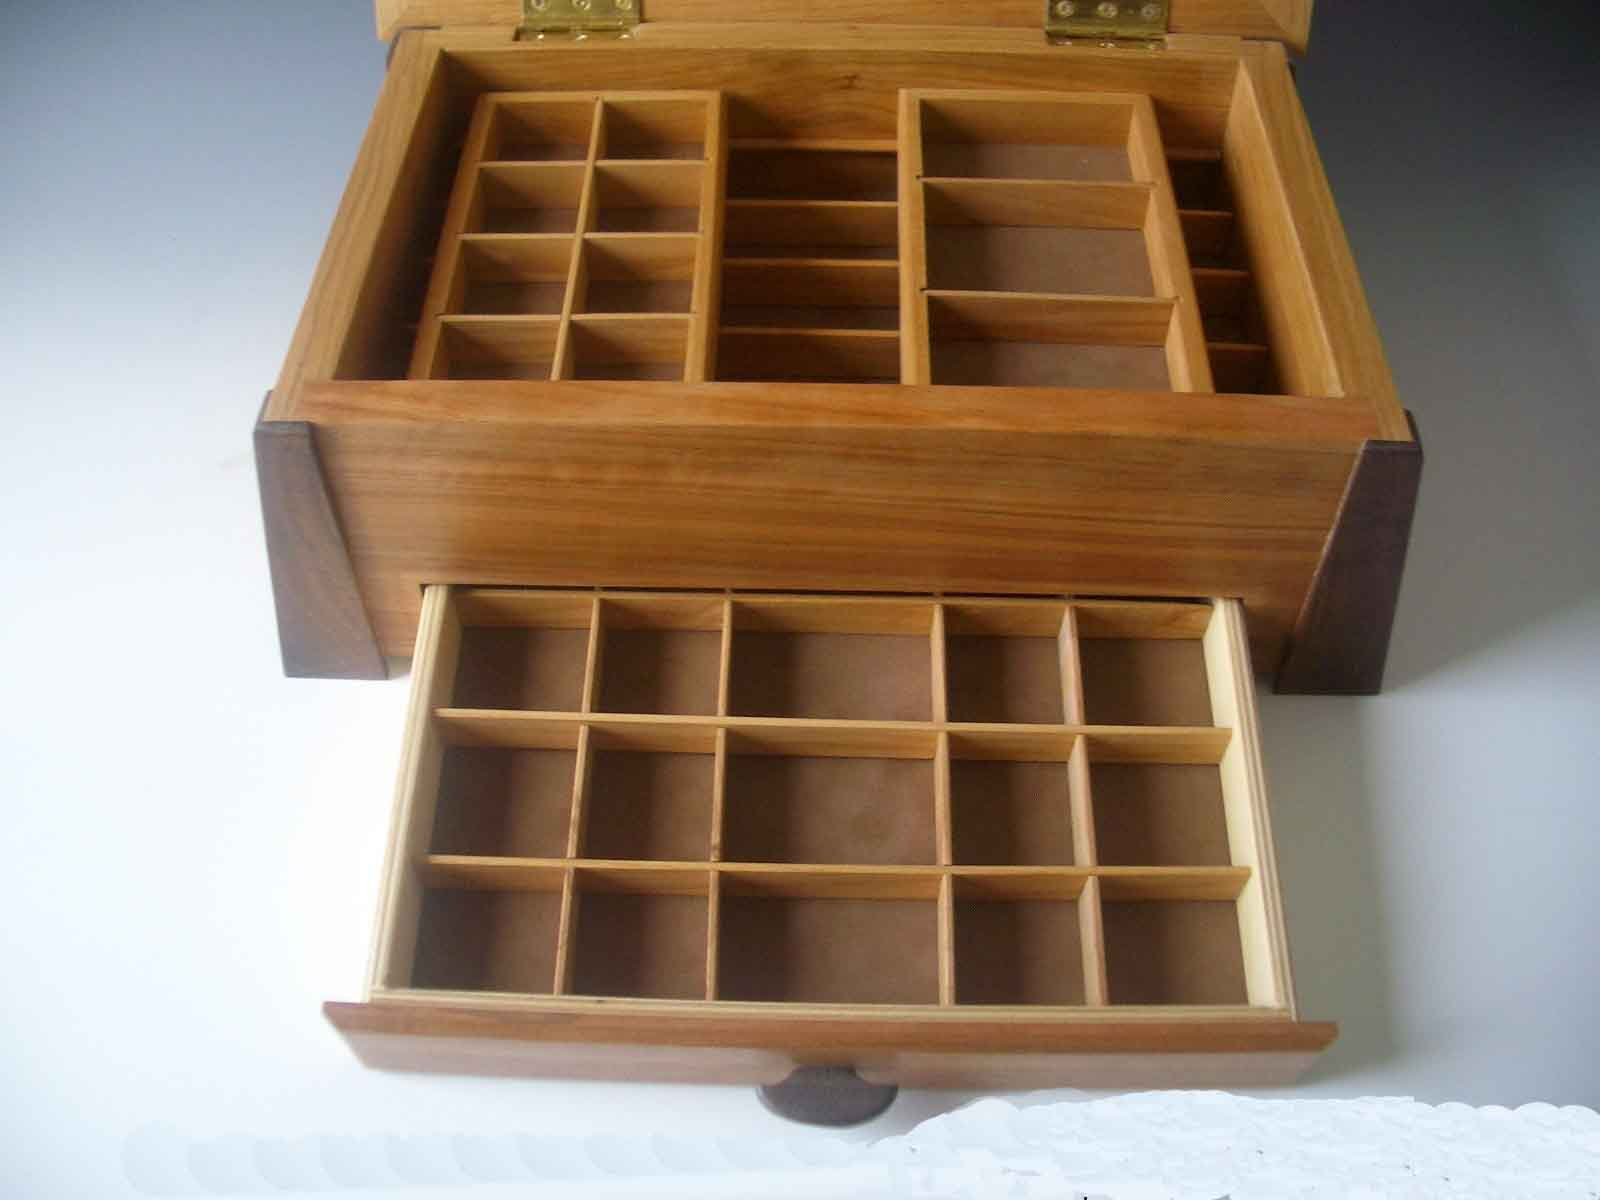 This Large Wooden Jewelry Box is a Great Jewelry Organizer